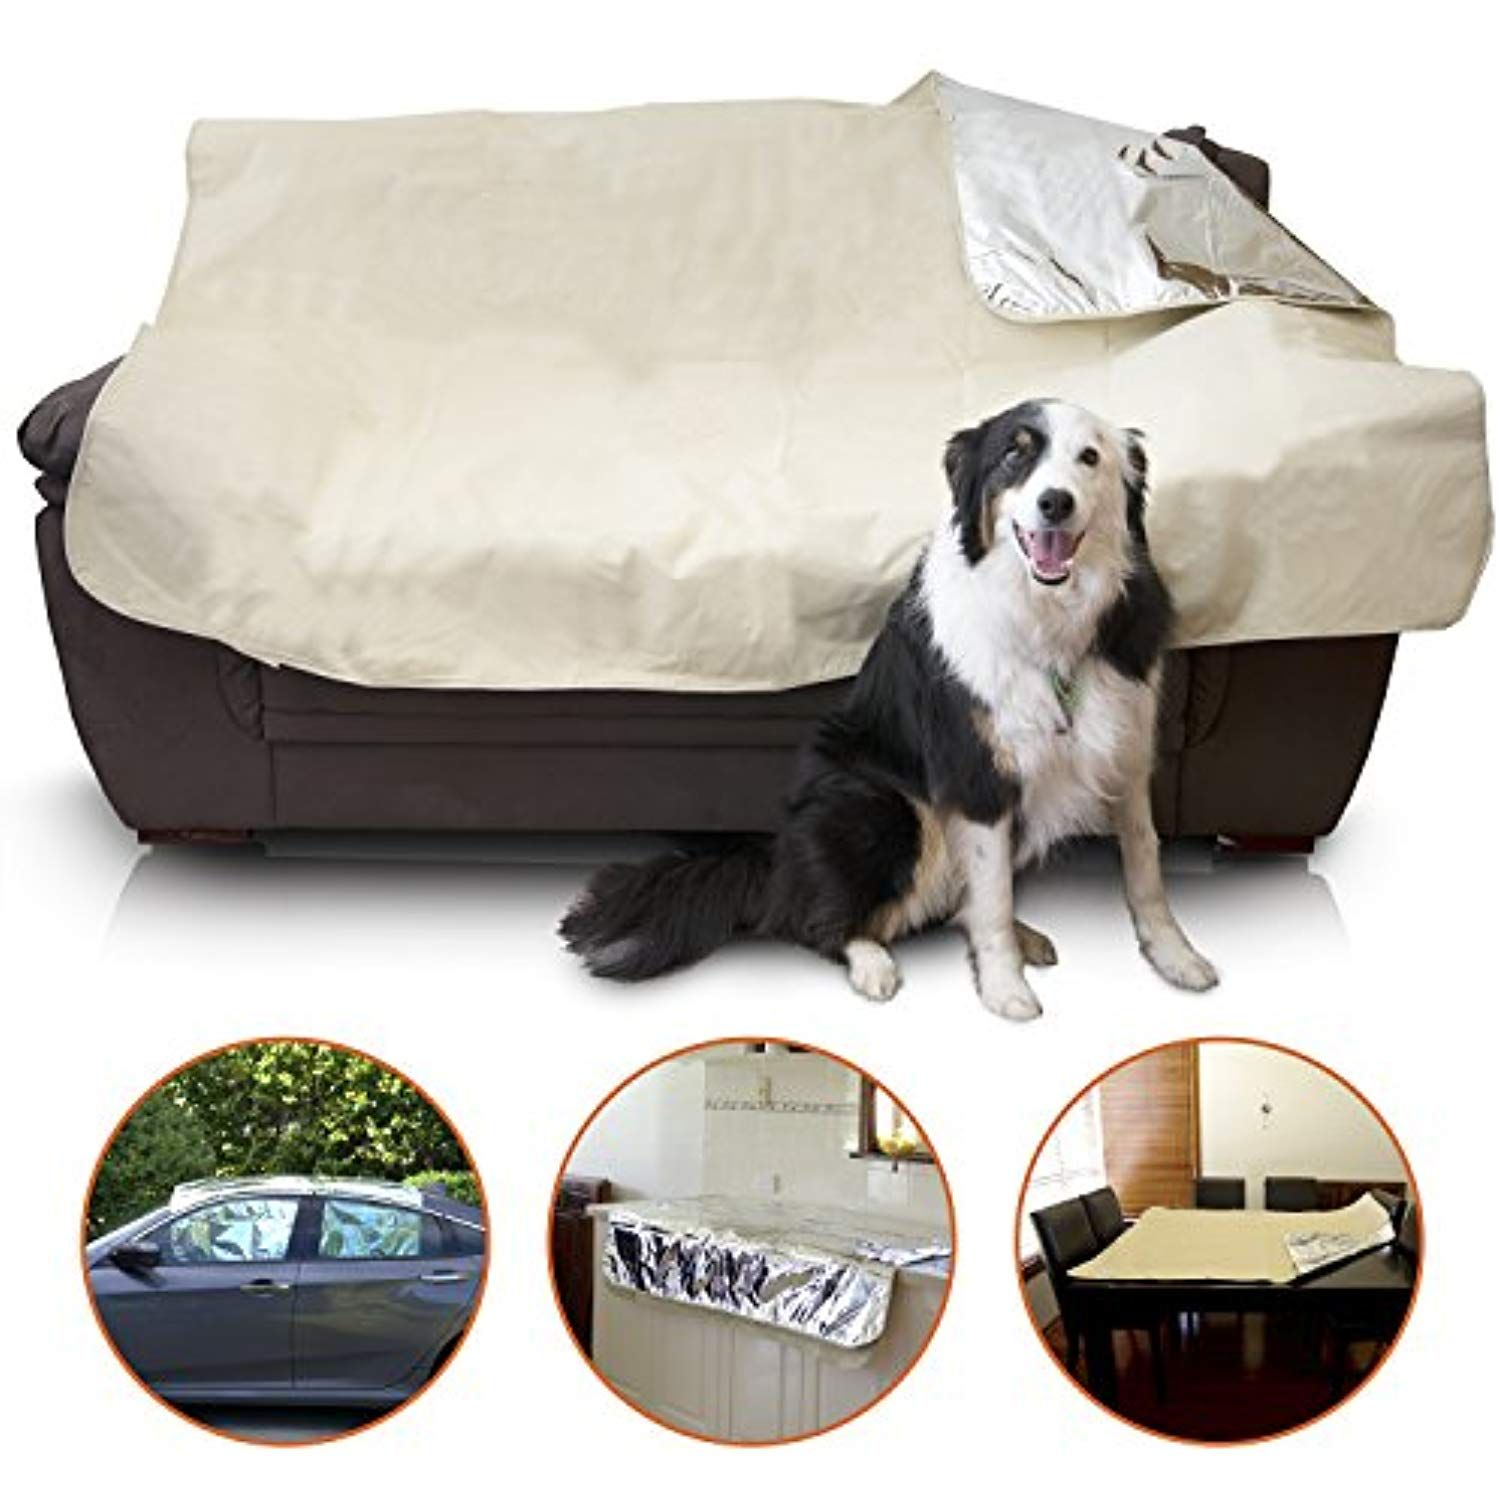 Mosher Pets Keep Dogs and Cats Off the Couch, Counter and